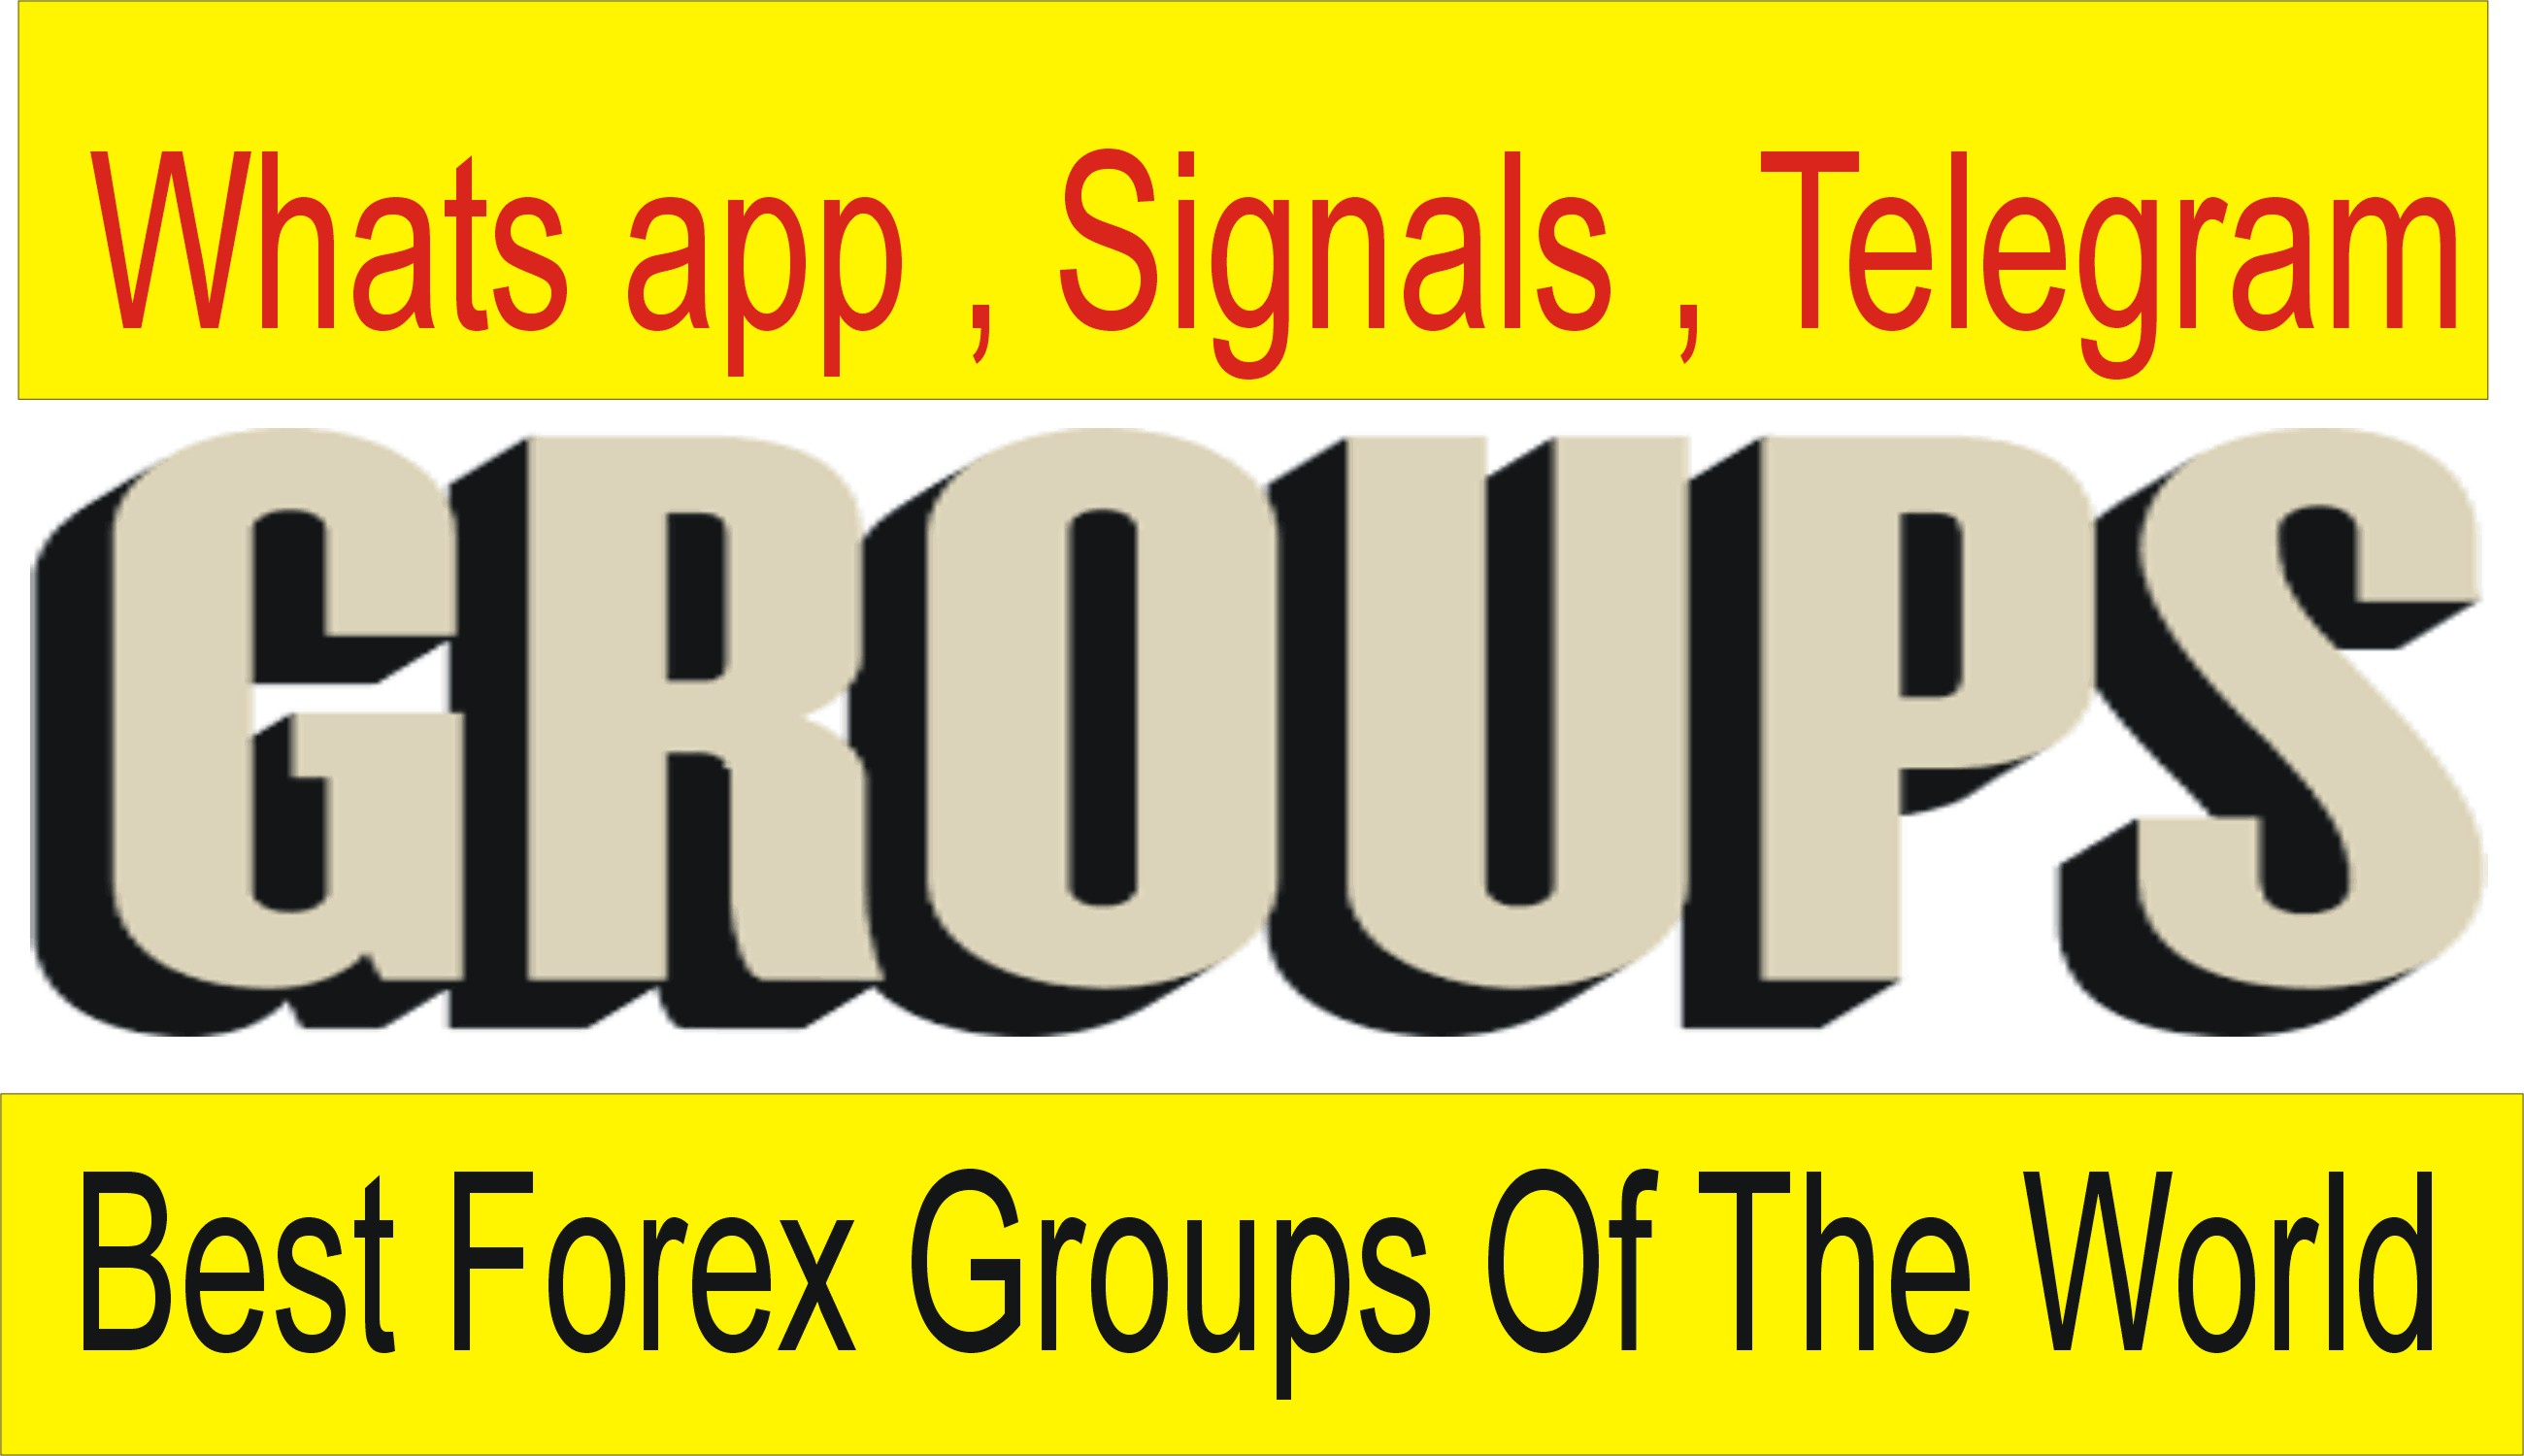 Best Forex Whats app, Signals, Telegram Group Benefits and